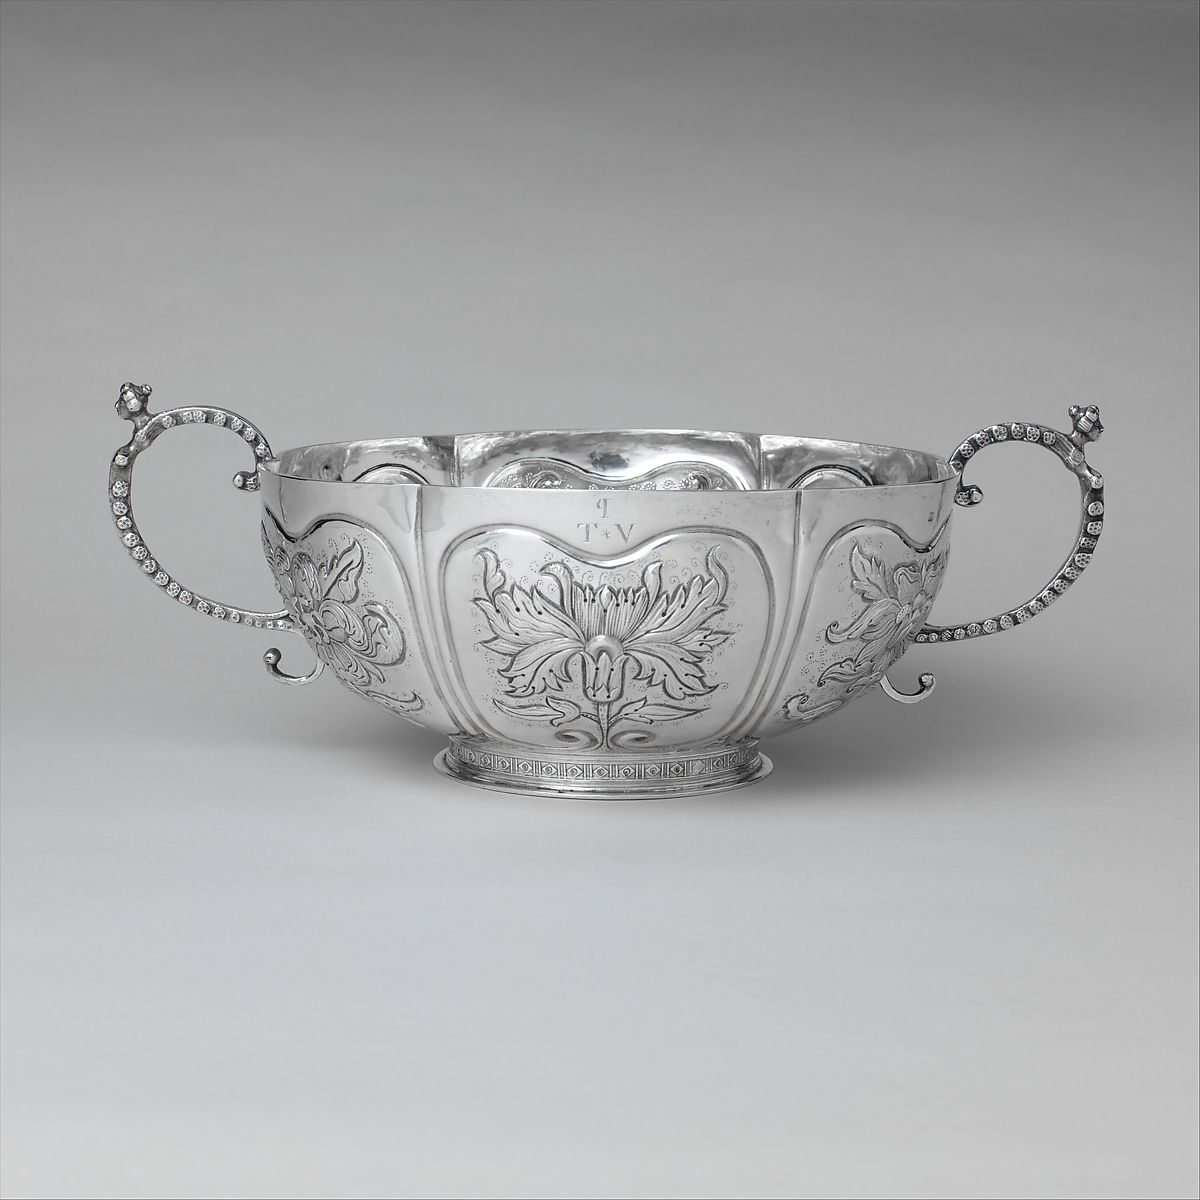 Cornelius Kierstede Two Handled Bowl American The Met